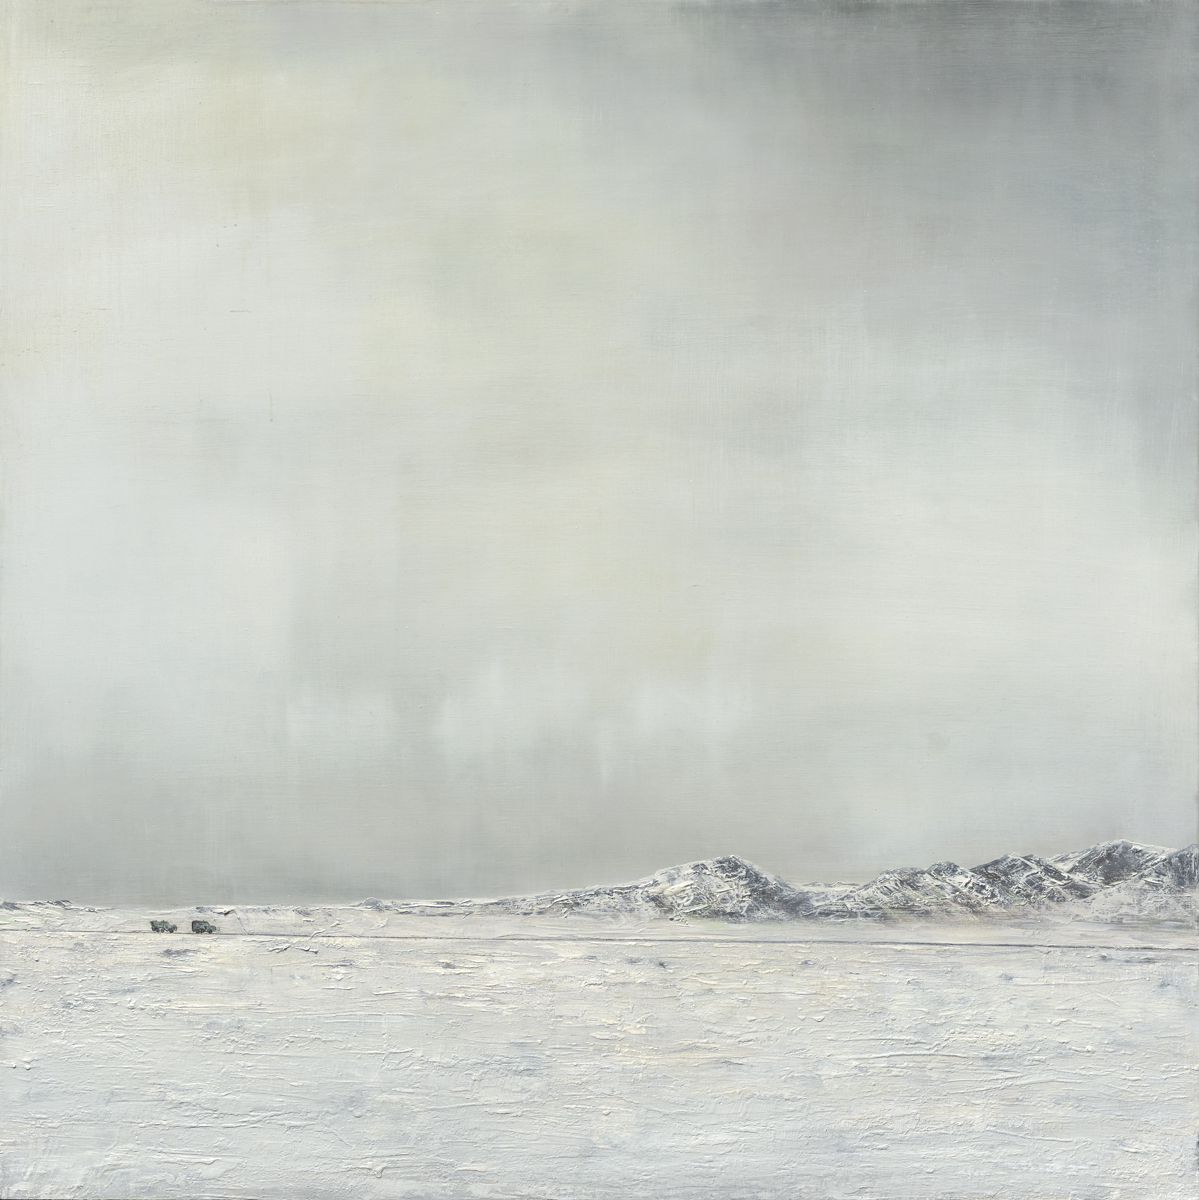 There's Oil Under the Arctic, 2017. 36X36 inches. Oil, Graphite on Wood. Giclee Prints Available.